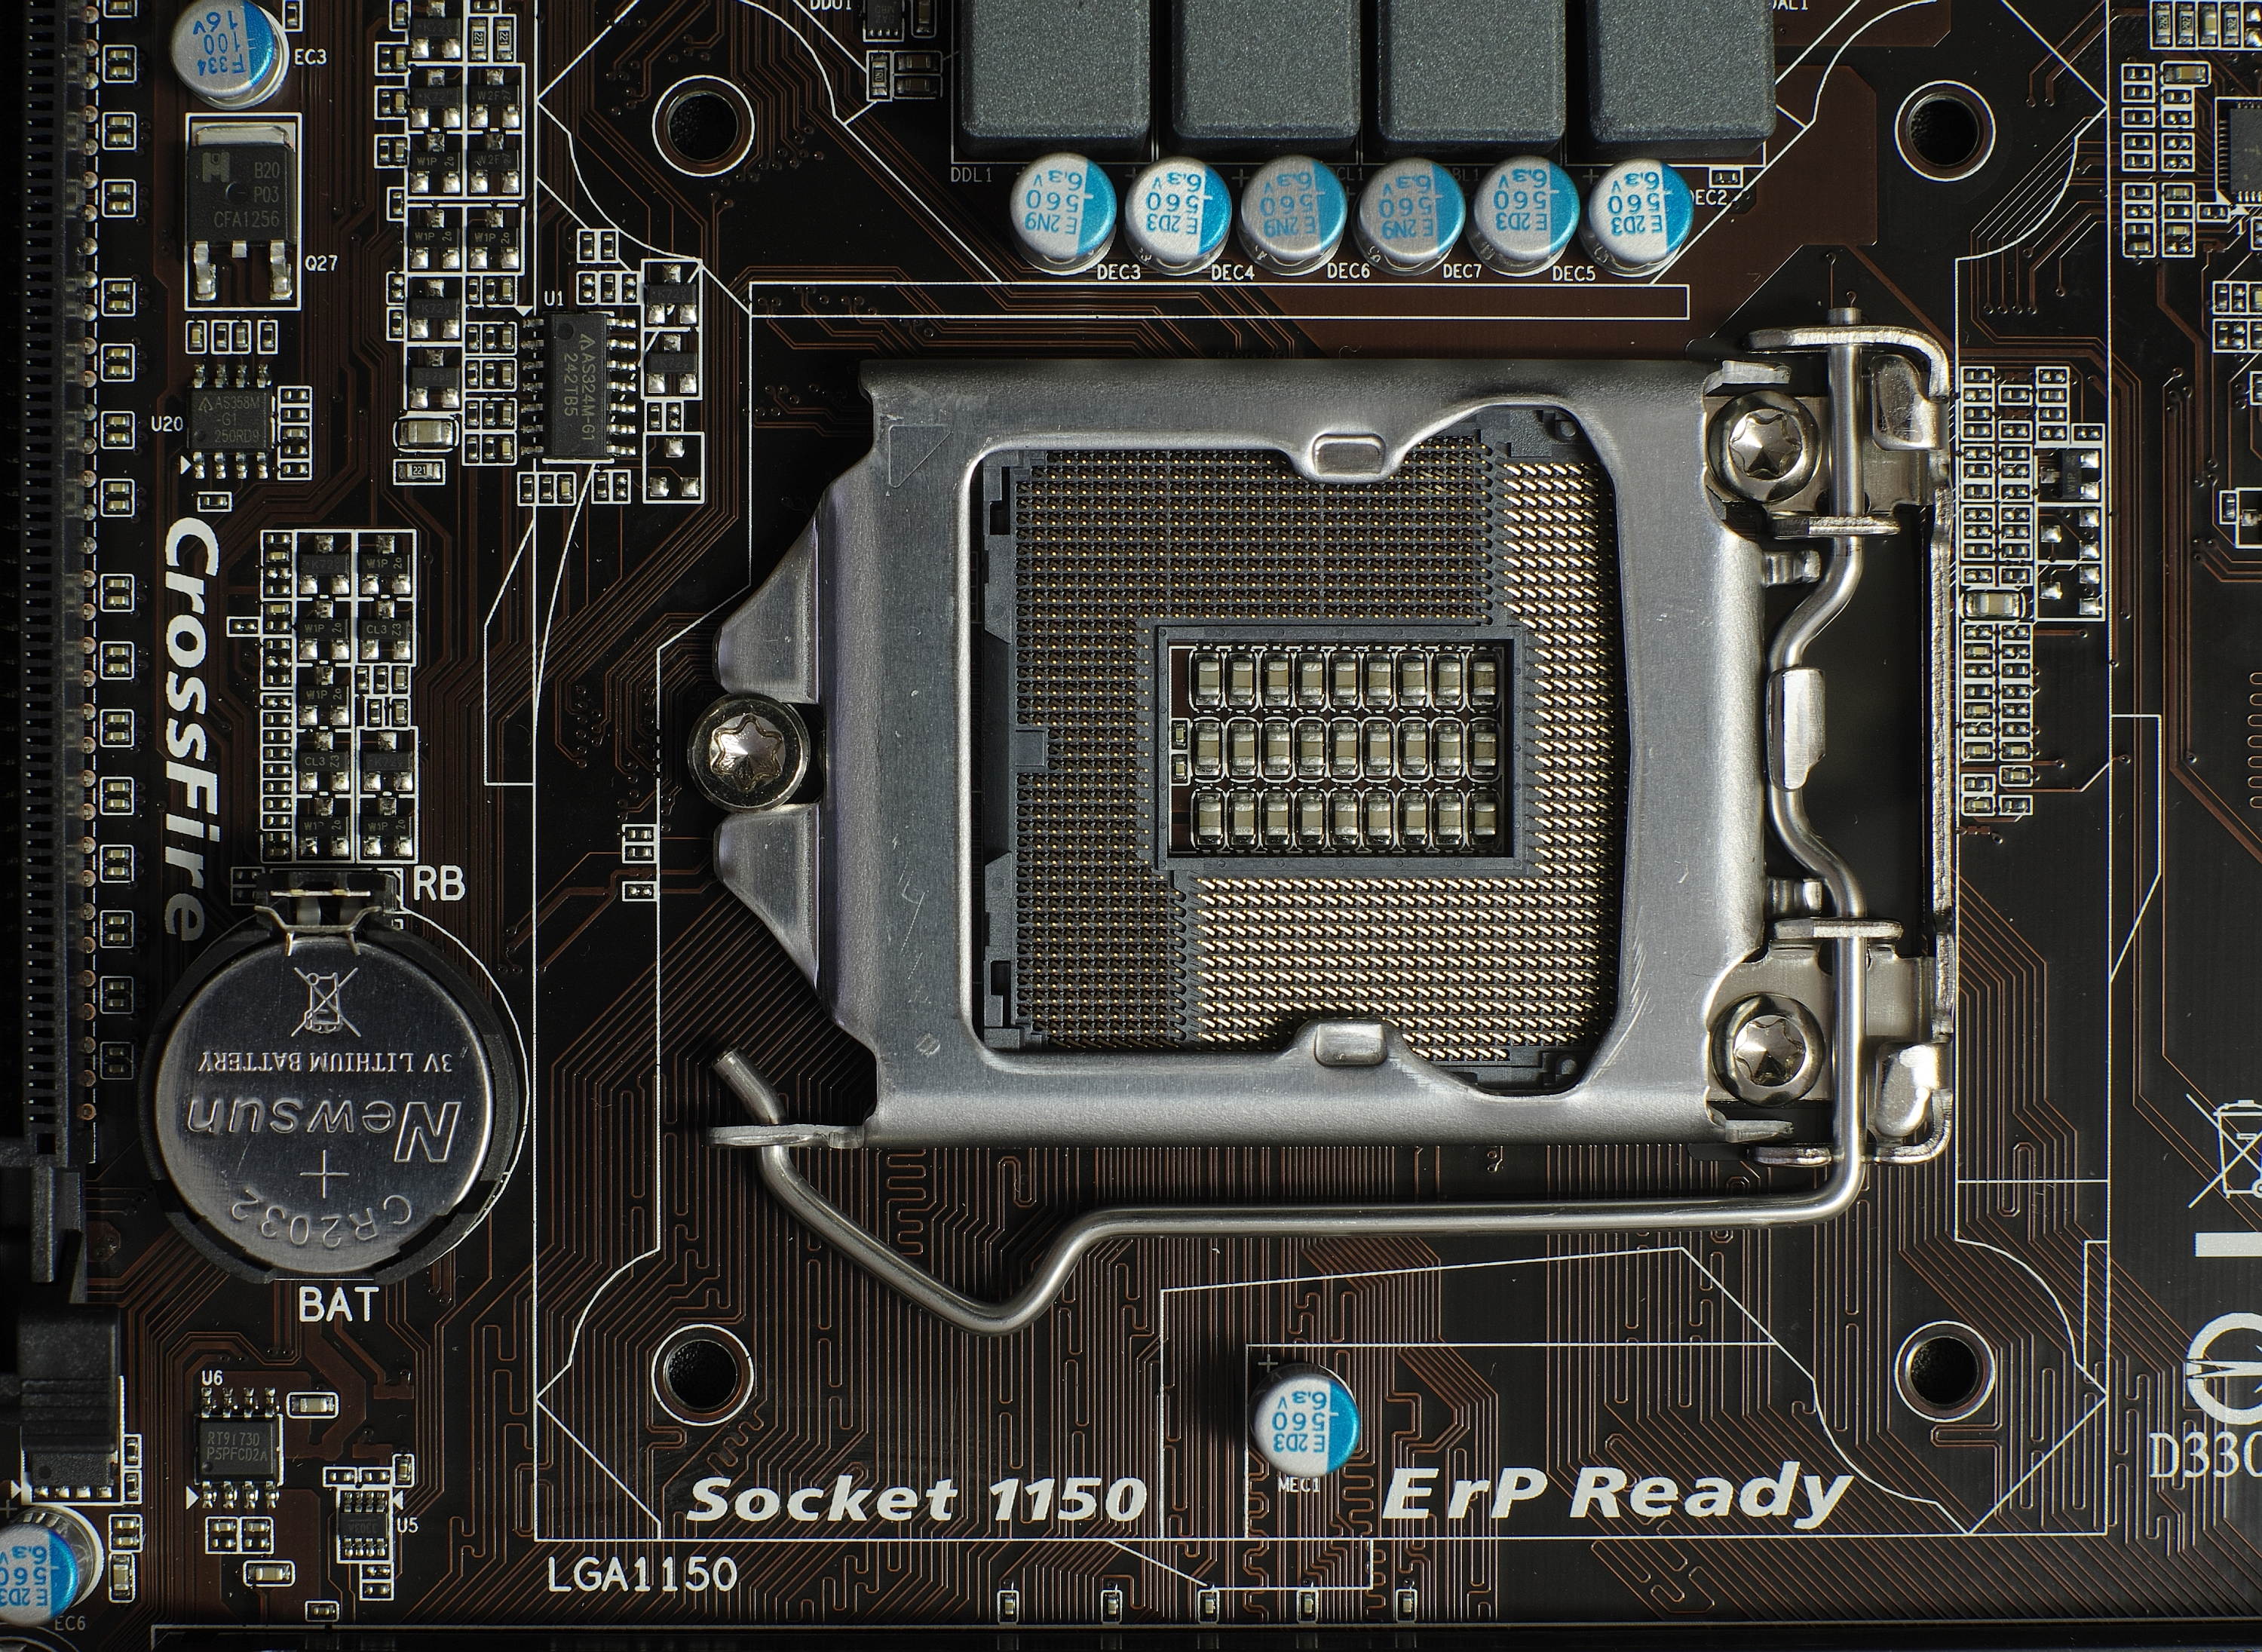 File:Intel Socket 1150 IMGP8590 smial wp.jpg